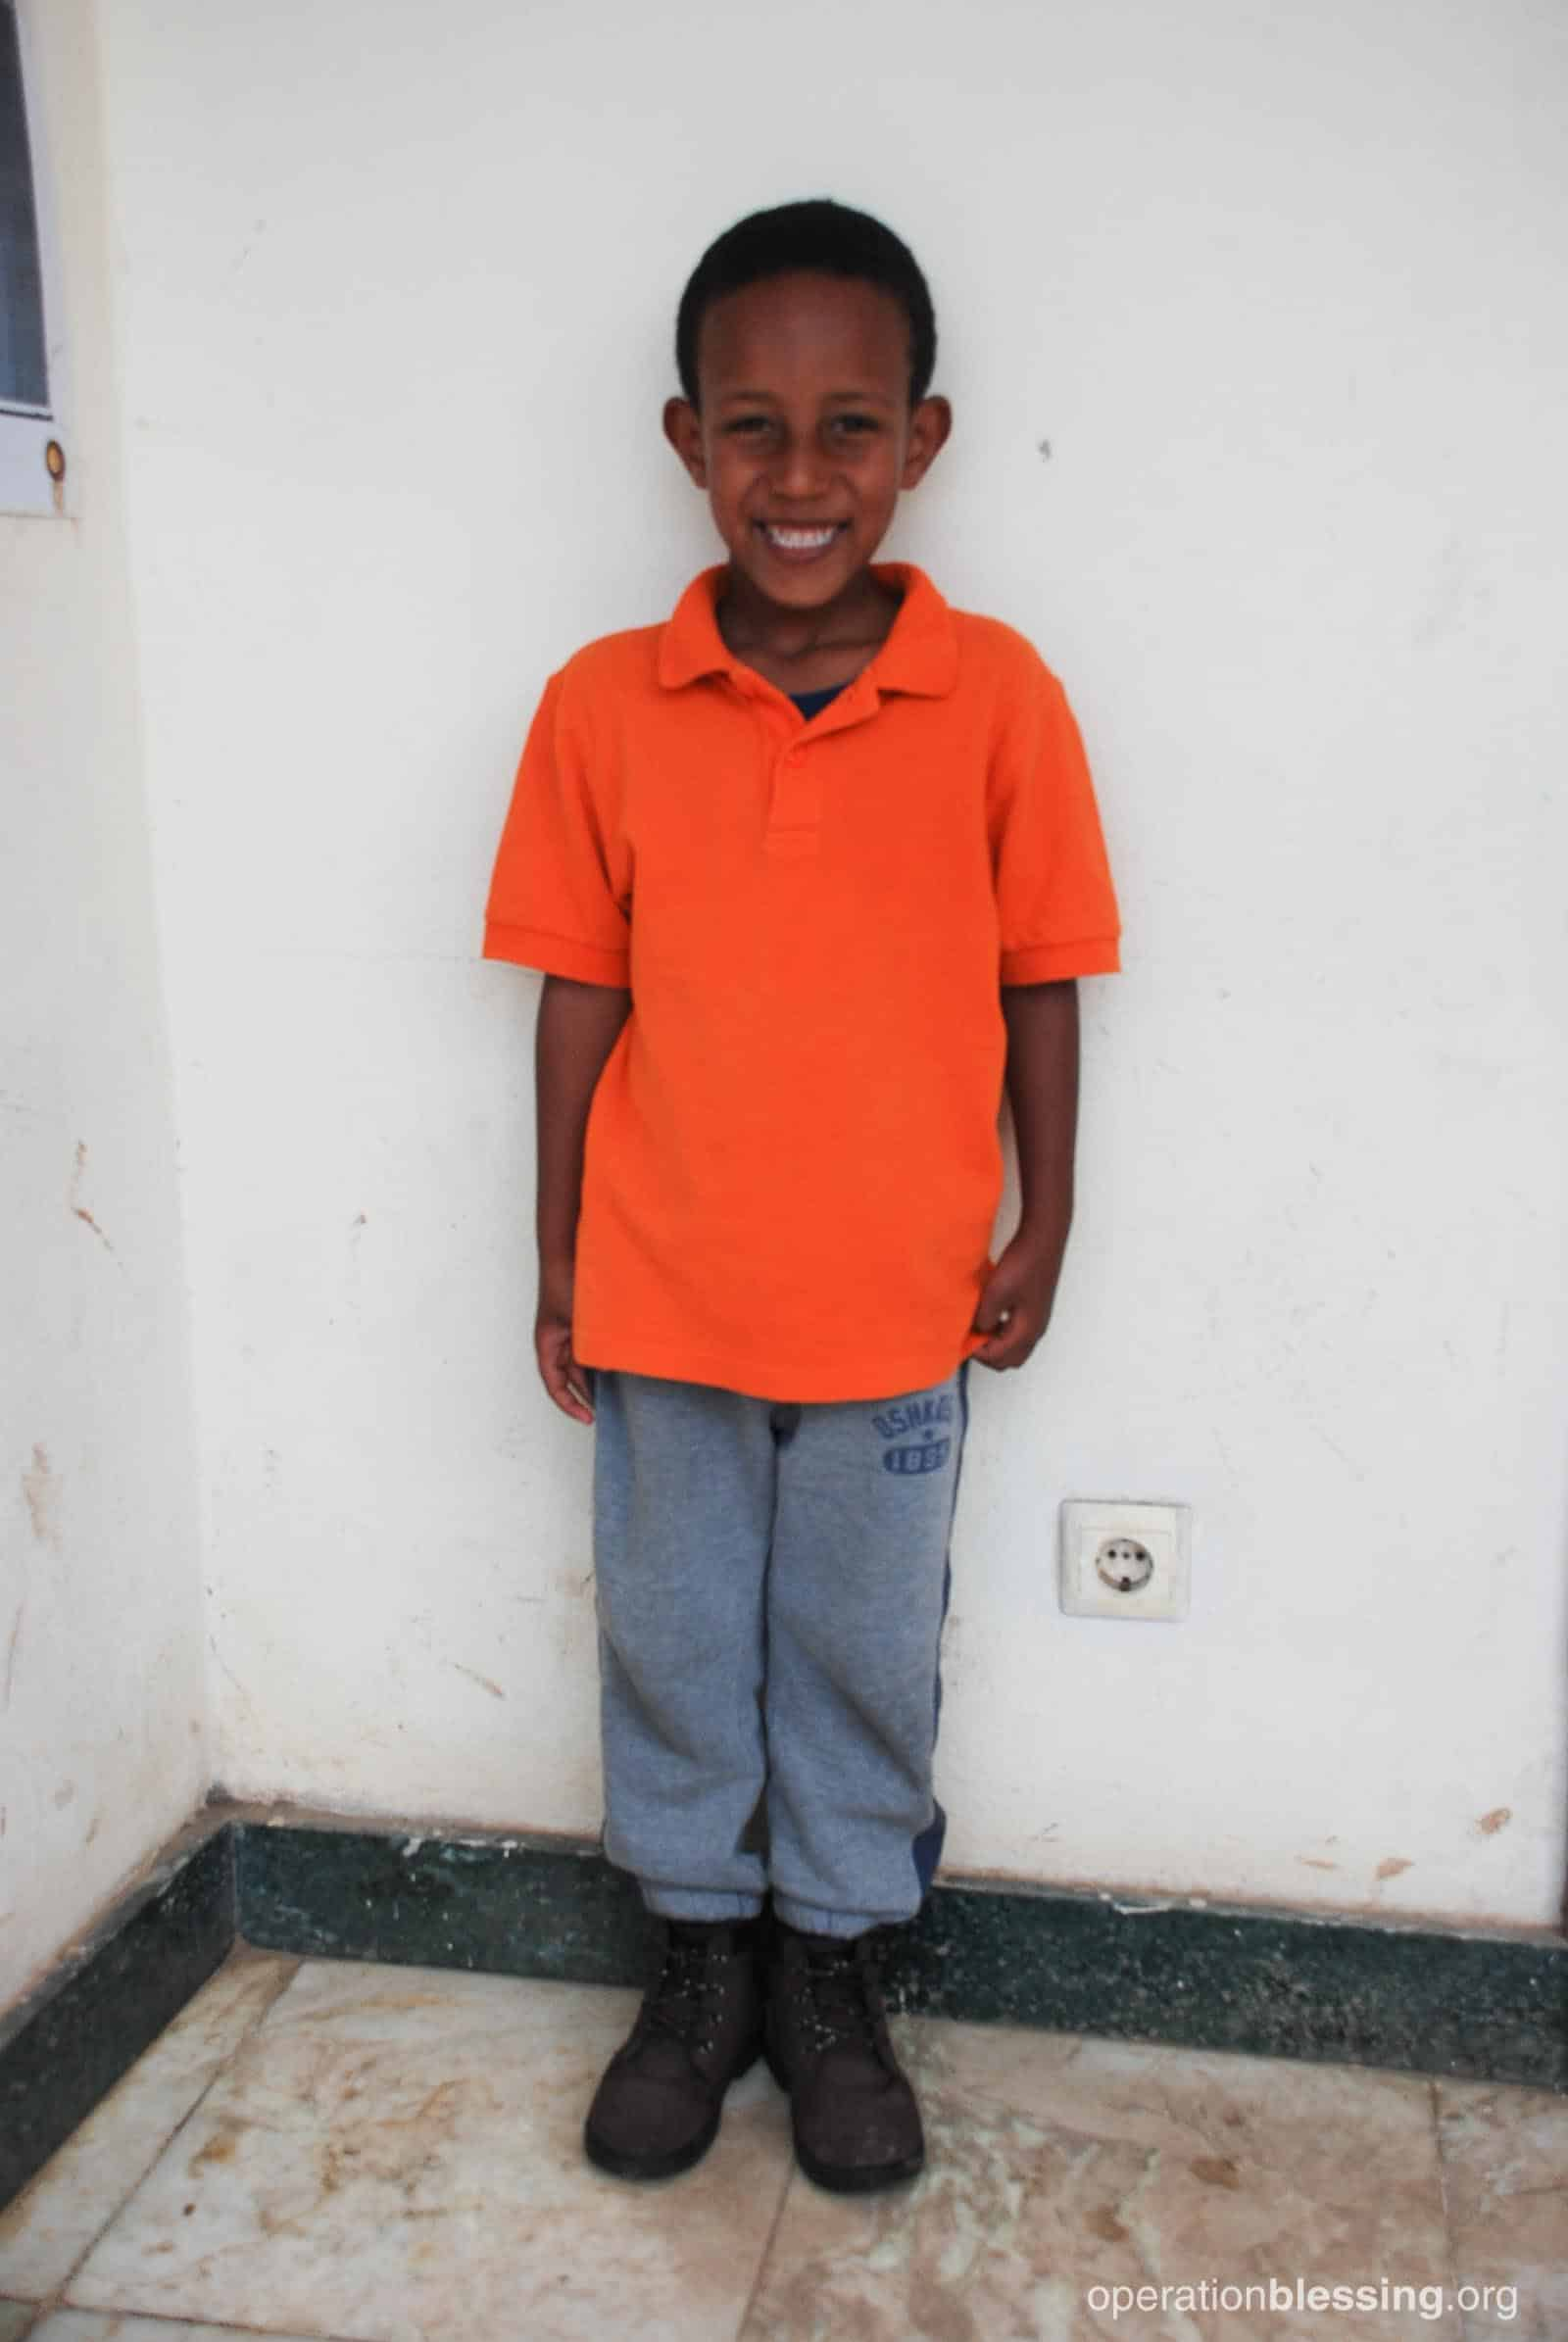 Abenezer is happy and healthy and gets nutritious meals thanks to the Embracing Hope school program.